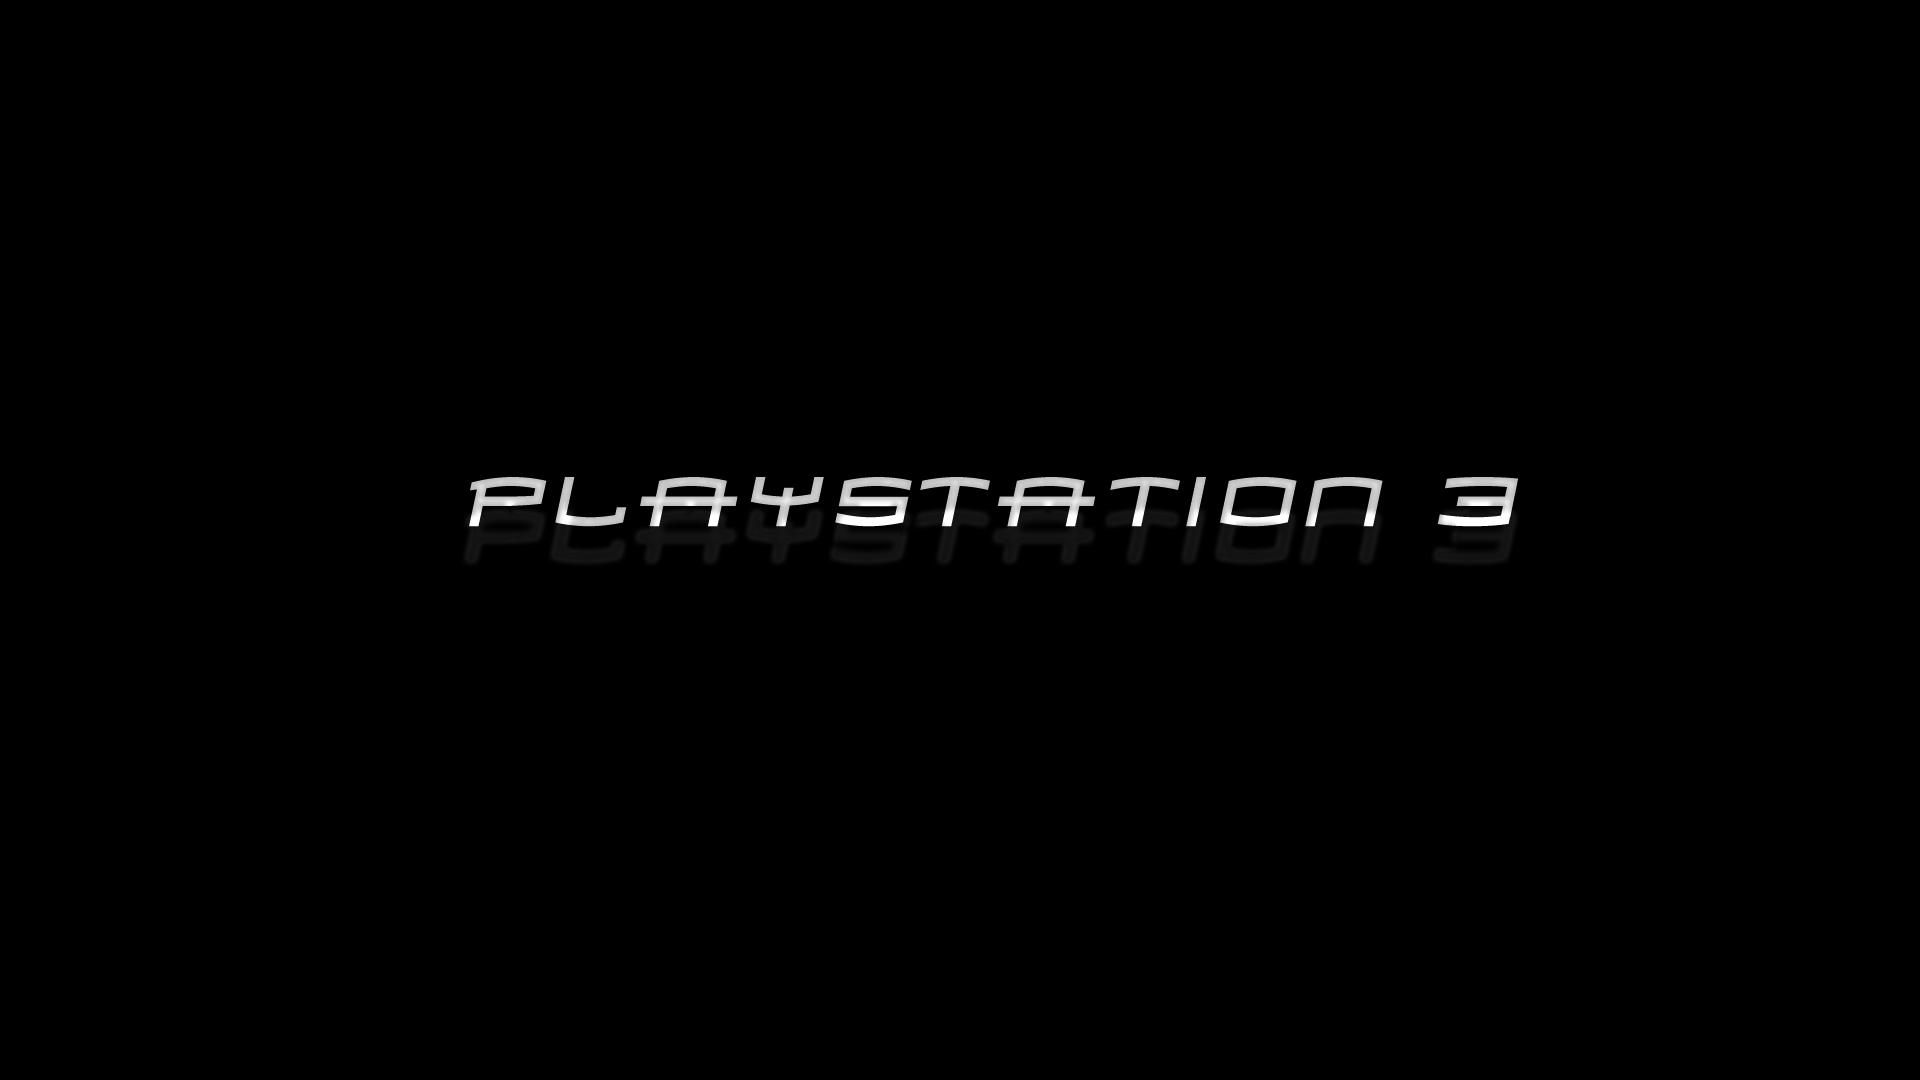 Ps3 Logo Wallpapers Top Free Ps3 Logo Backgrounds